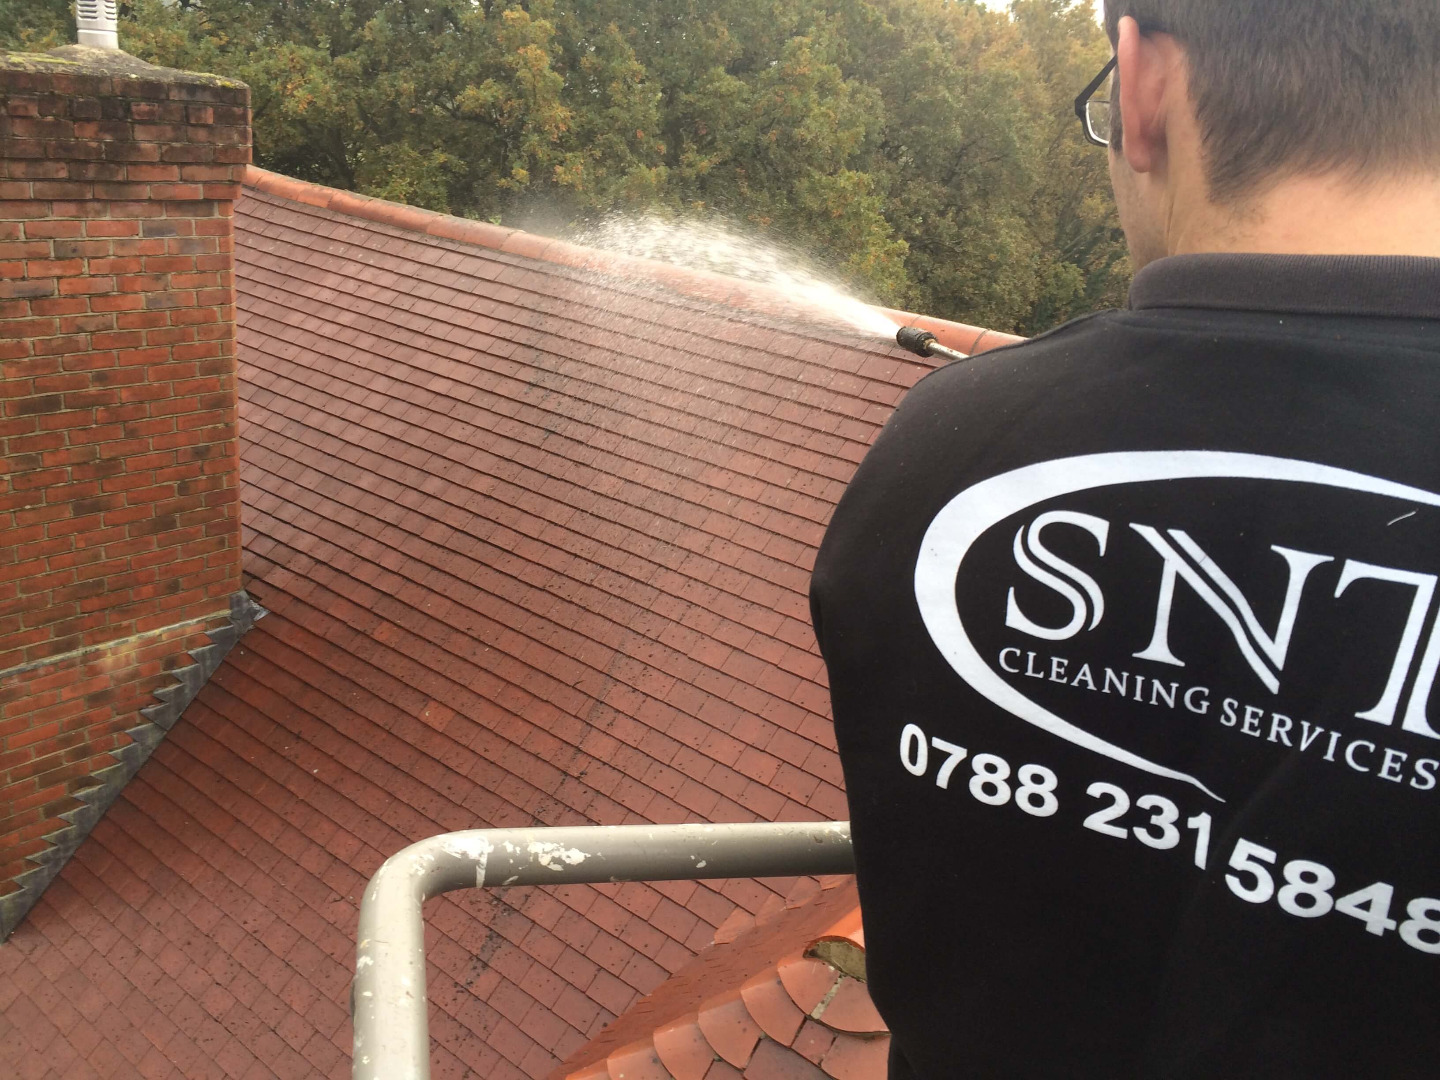 New Pressure Washing Snt Cleaning Services